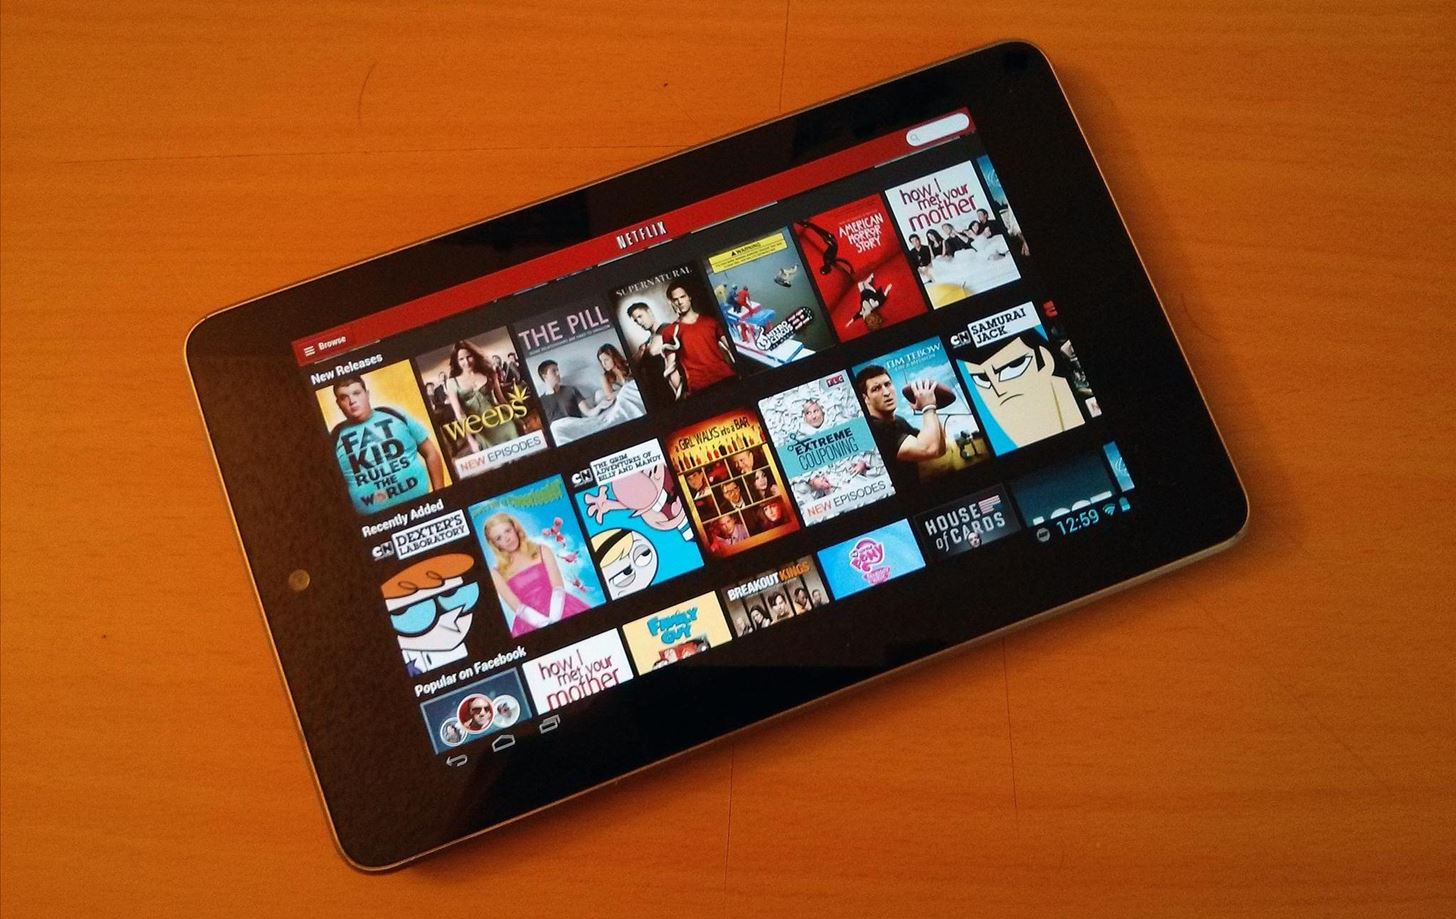 How to Mod Your Nexus 7 to Make Netflix & YouTube Show You More Video Options on the Screen